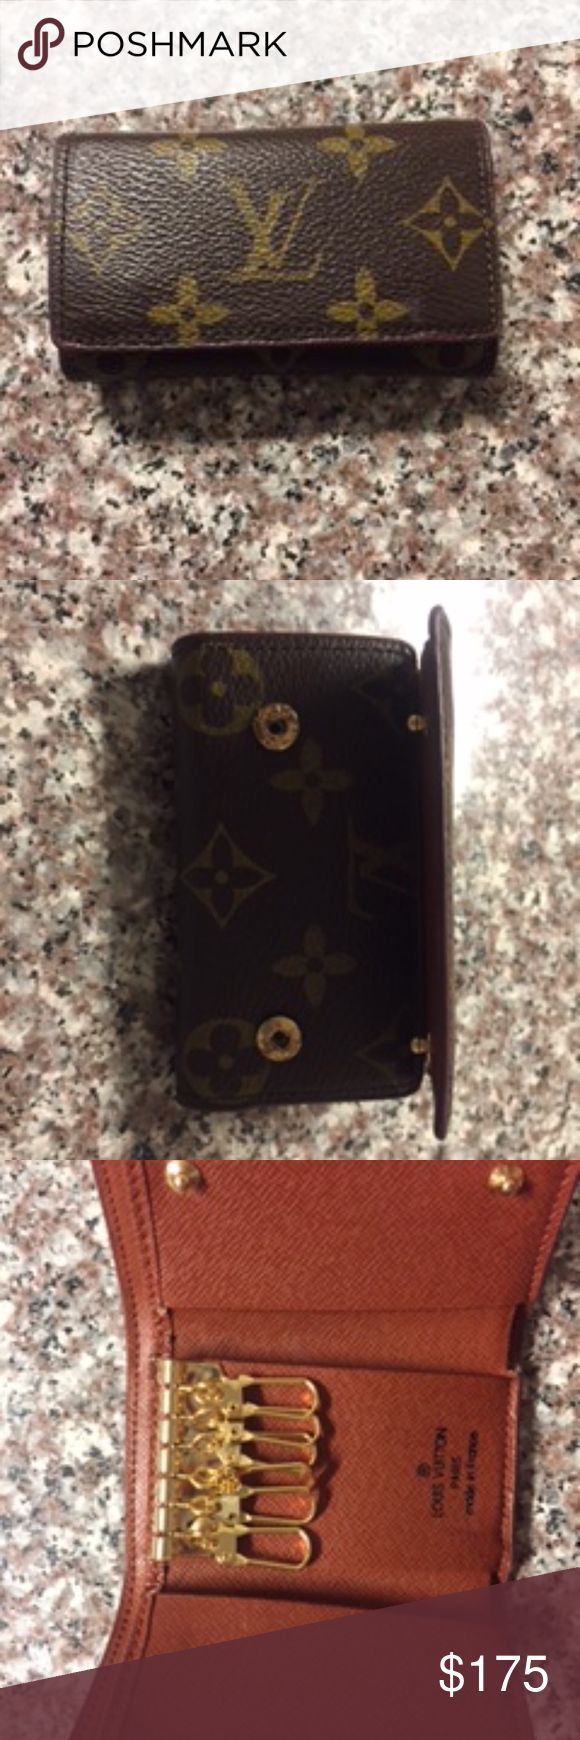 Louis Vuitton 6 Key Wallet excellent condition vintage LV key holder with wallet--price negotiable Louis Vuitton Bags Wallets